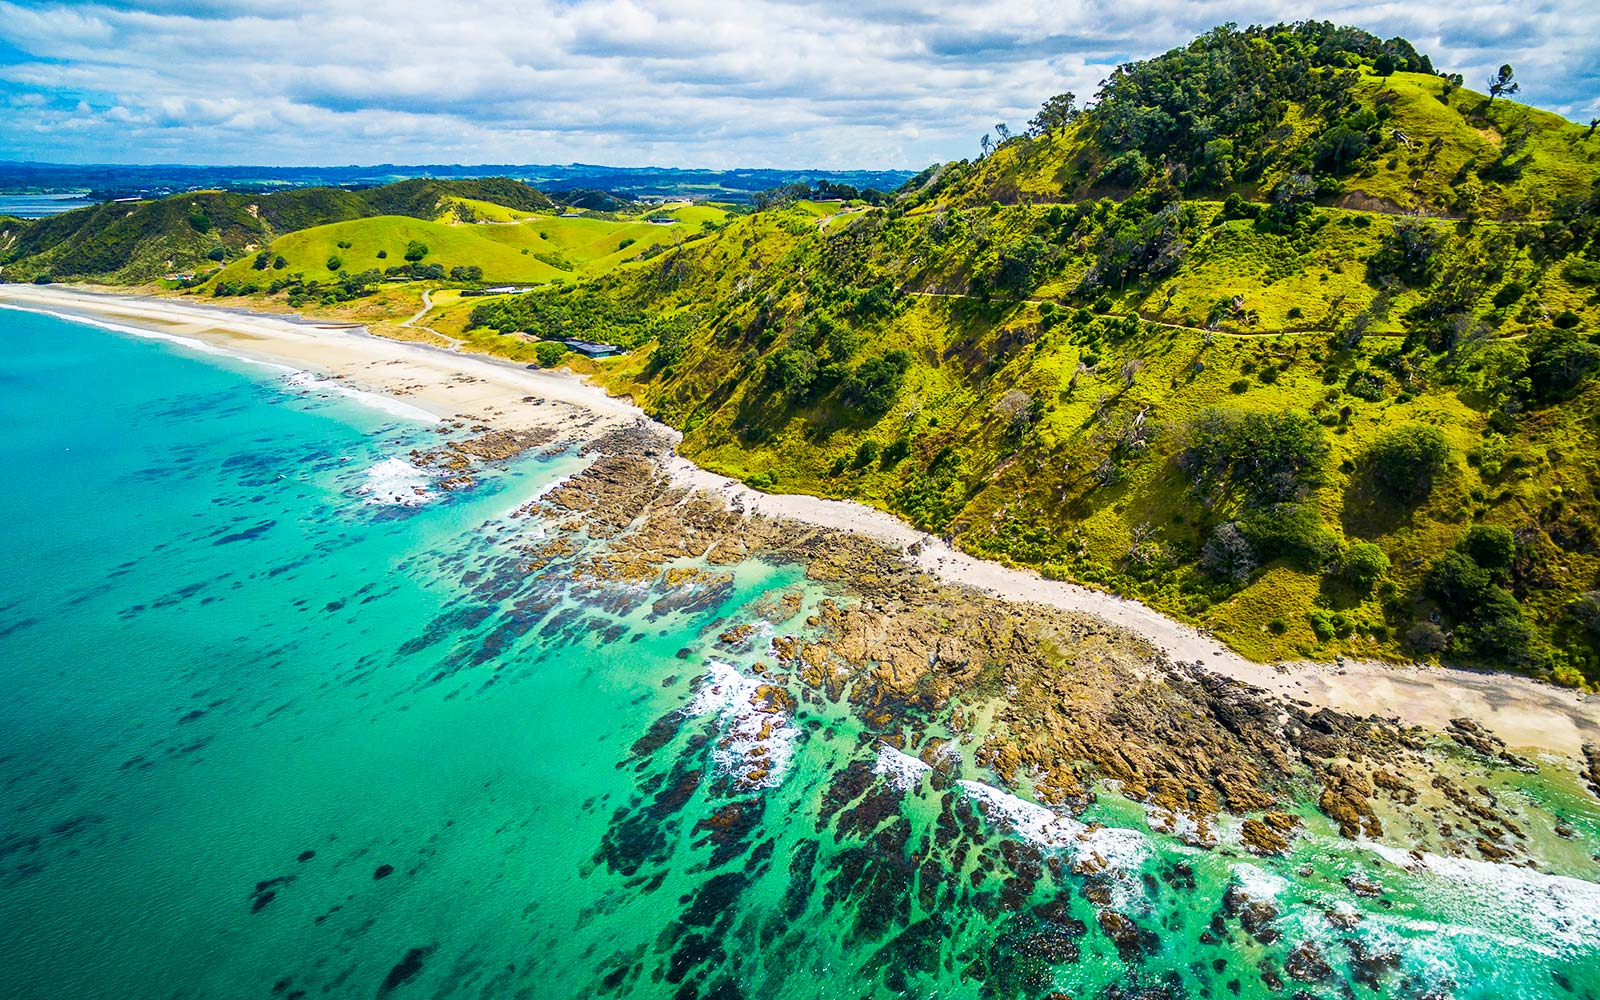 Scientists Reveal That There's a New 8th Continent Called Zealandia